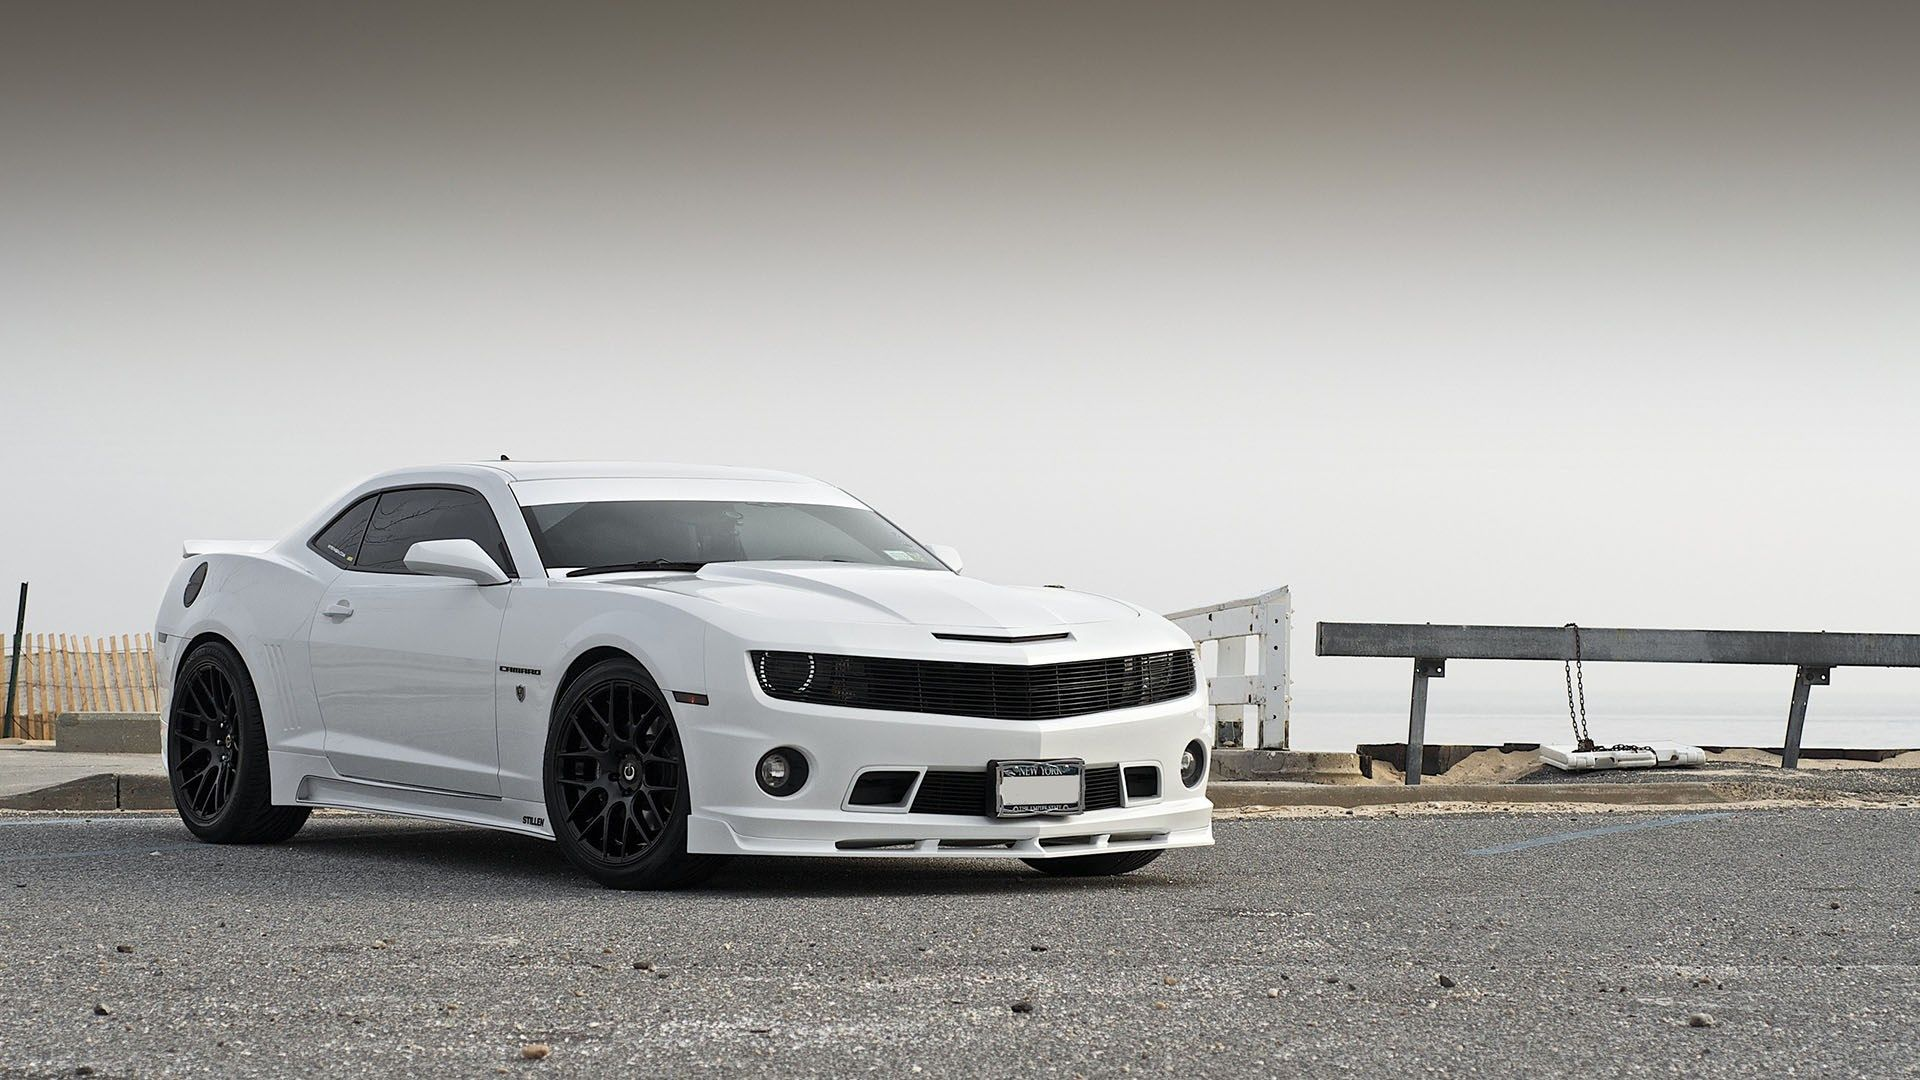 Hd Chevrolet Camaro Wallpaper